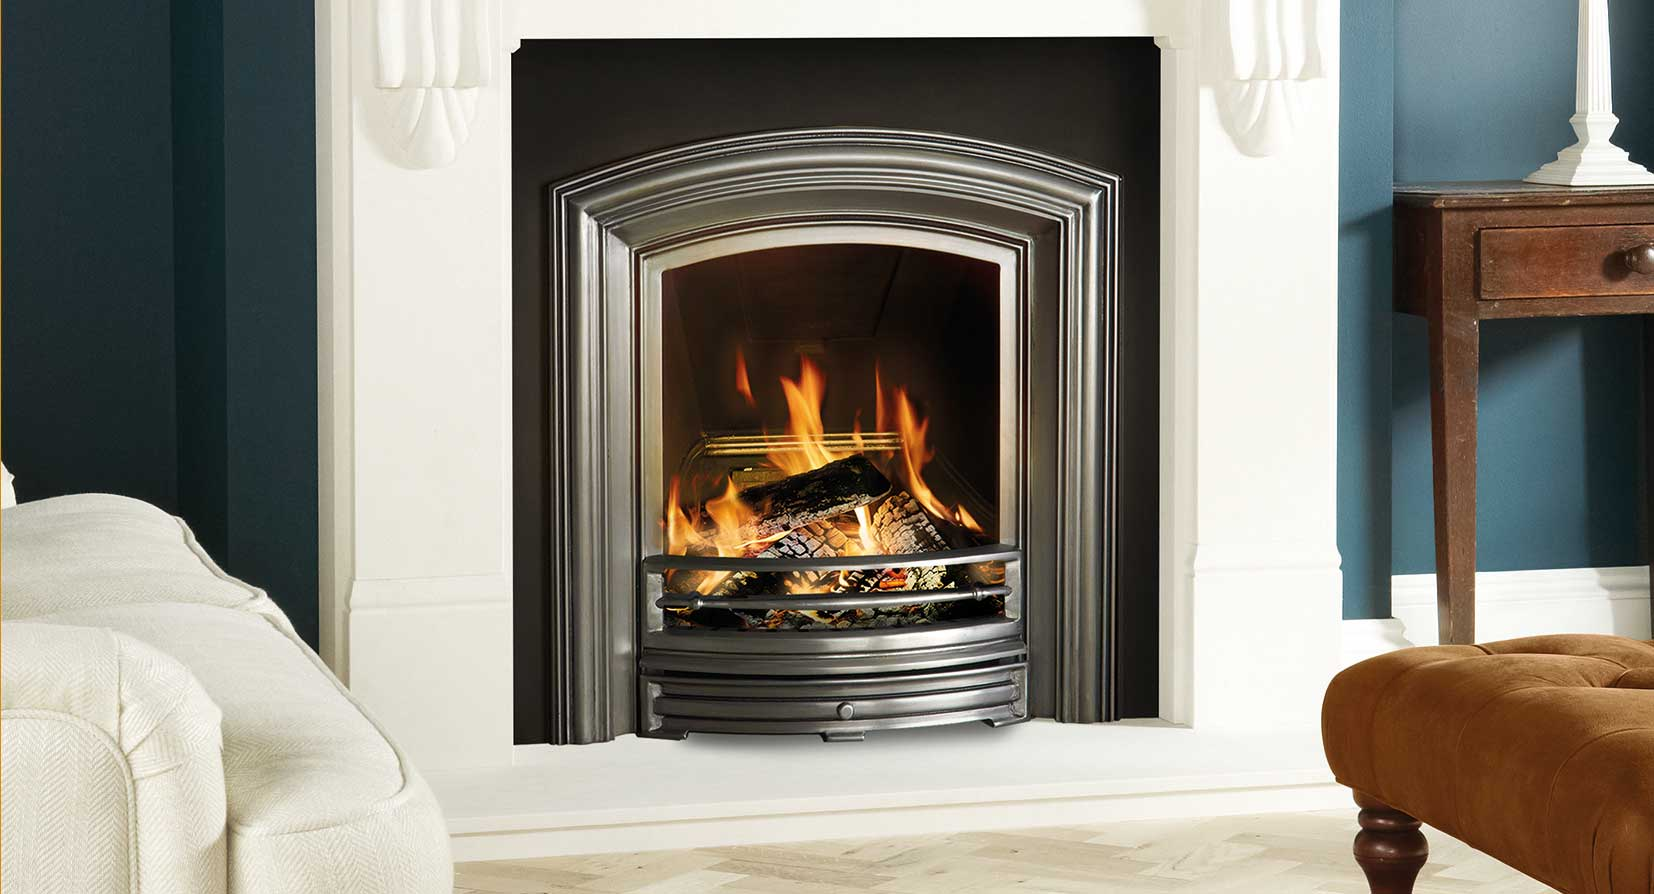 alexandra insert fireplaces stovax traditional fireplaces